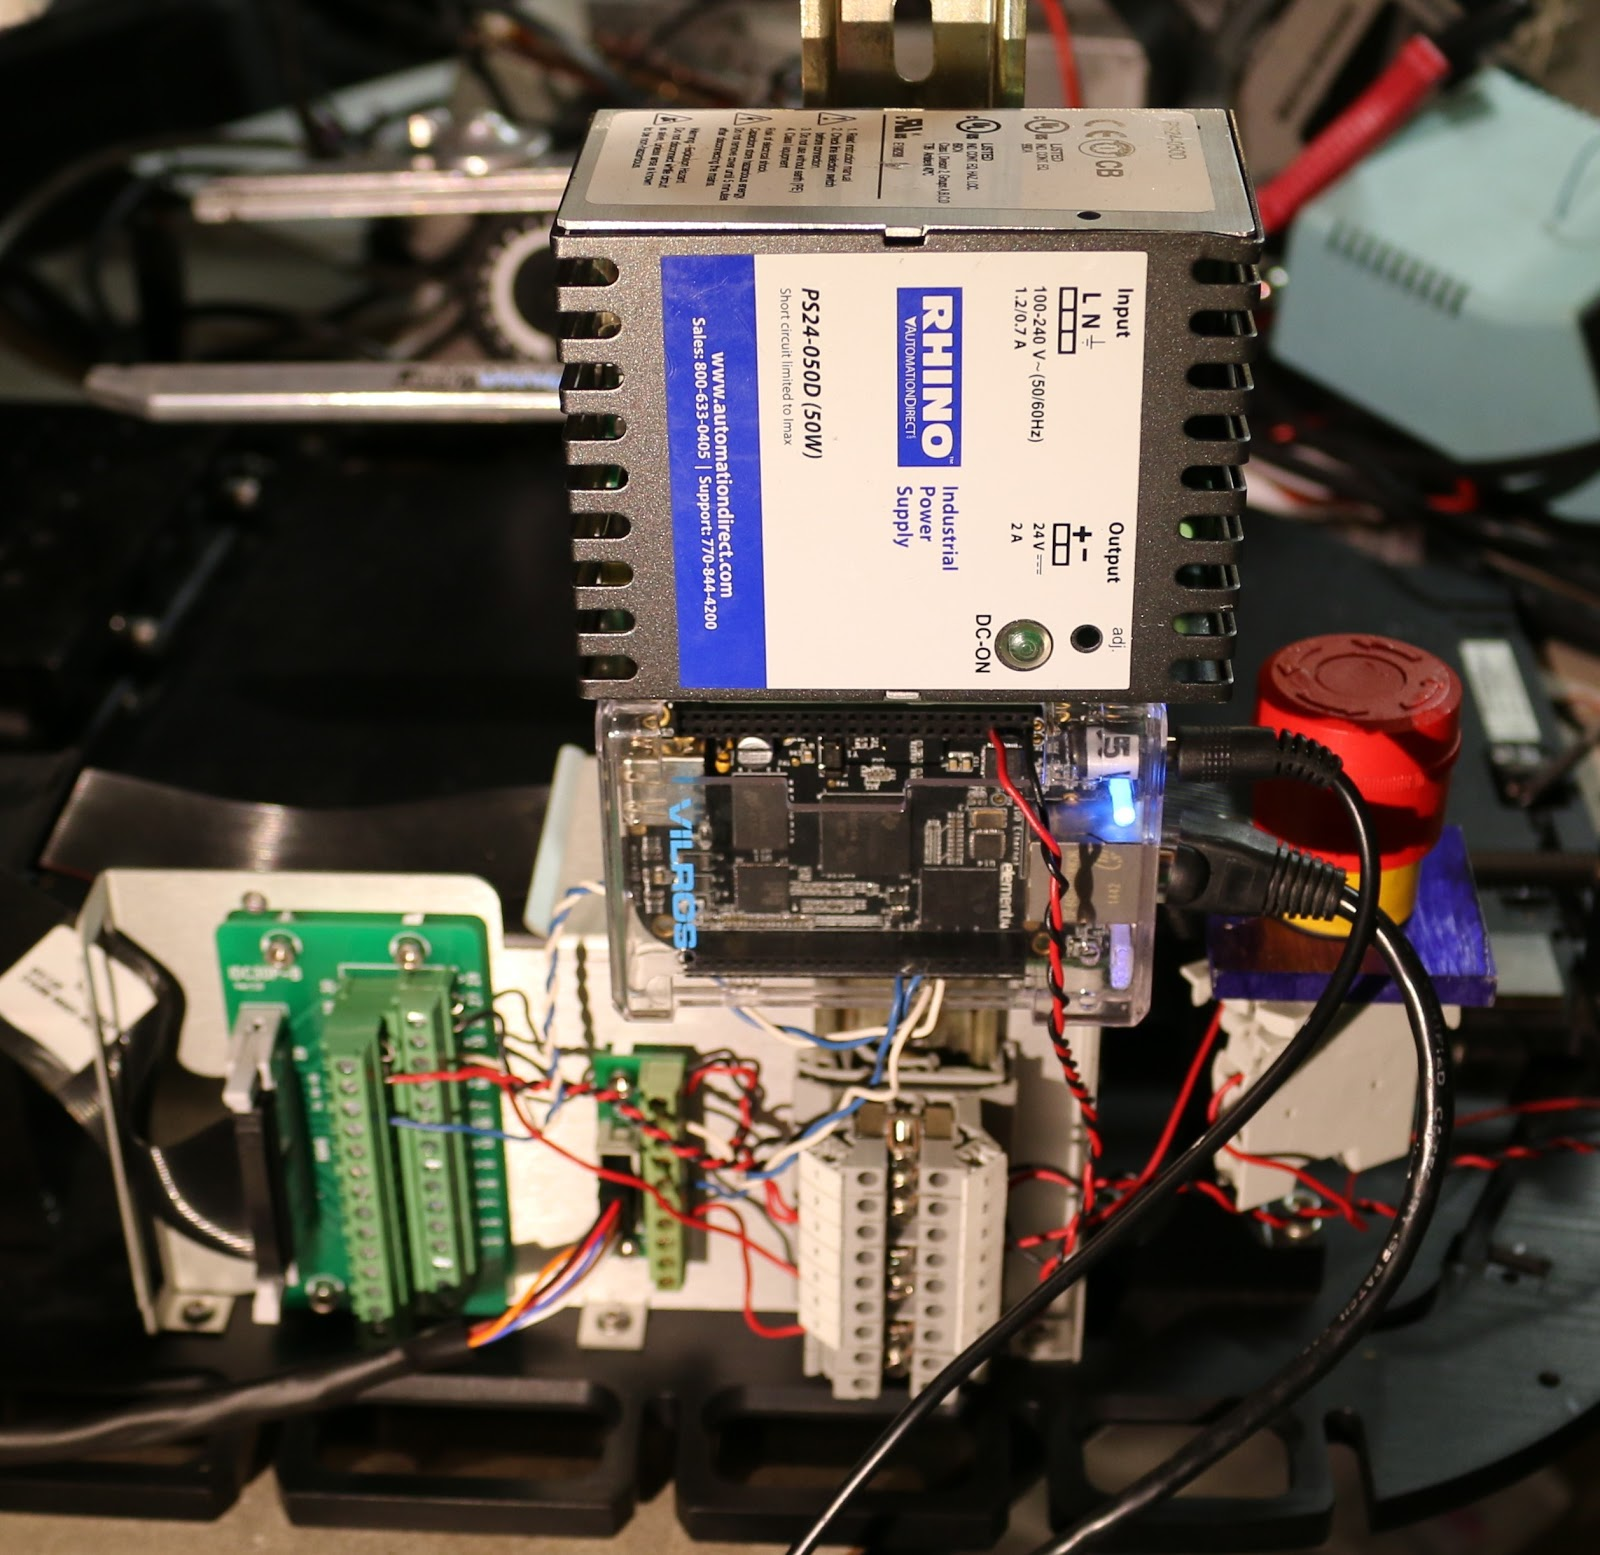 Homemade X Ray Inspector Reveals Pcb Secrets Make Printing Machine Prices Buy Circuit Board Machinecircuit A Beaglebone Black Running Linuxcnc Controls The 2 Axis Linear Stage